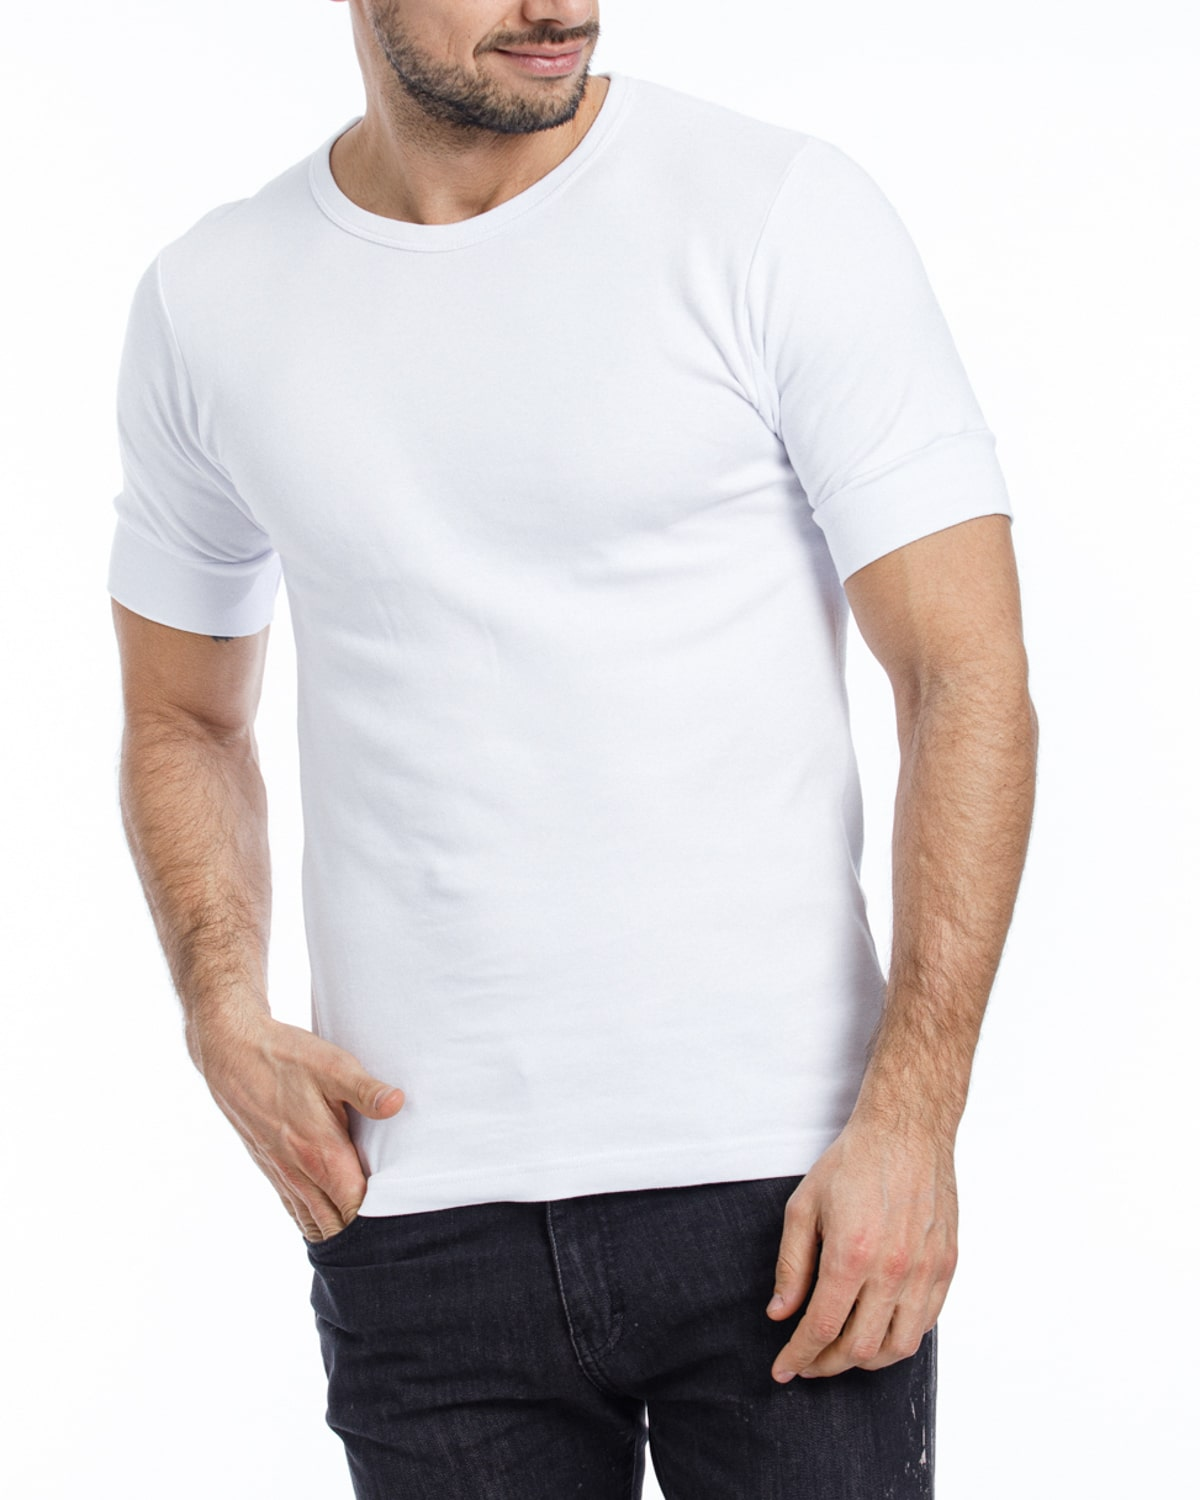 Camiseta Interlock 171